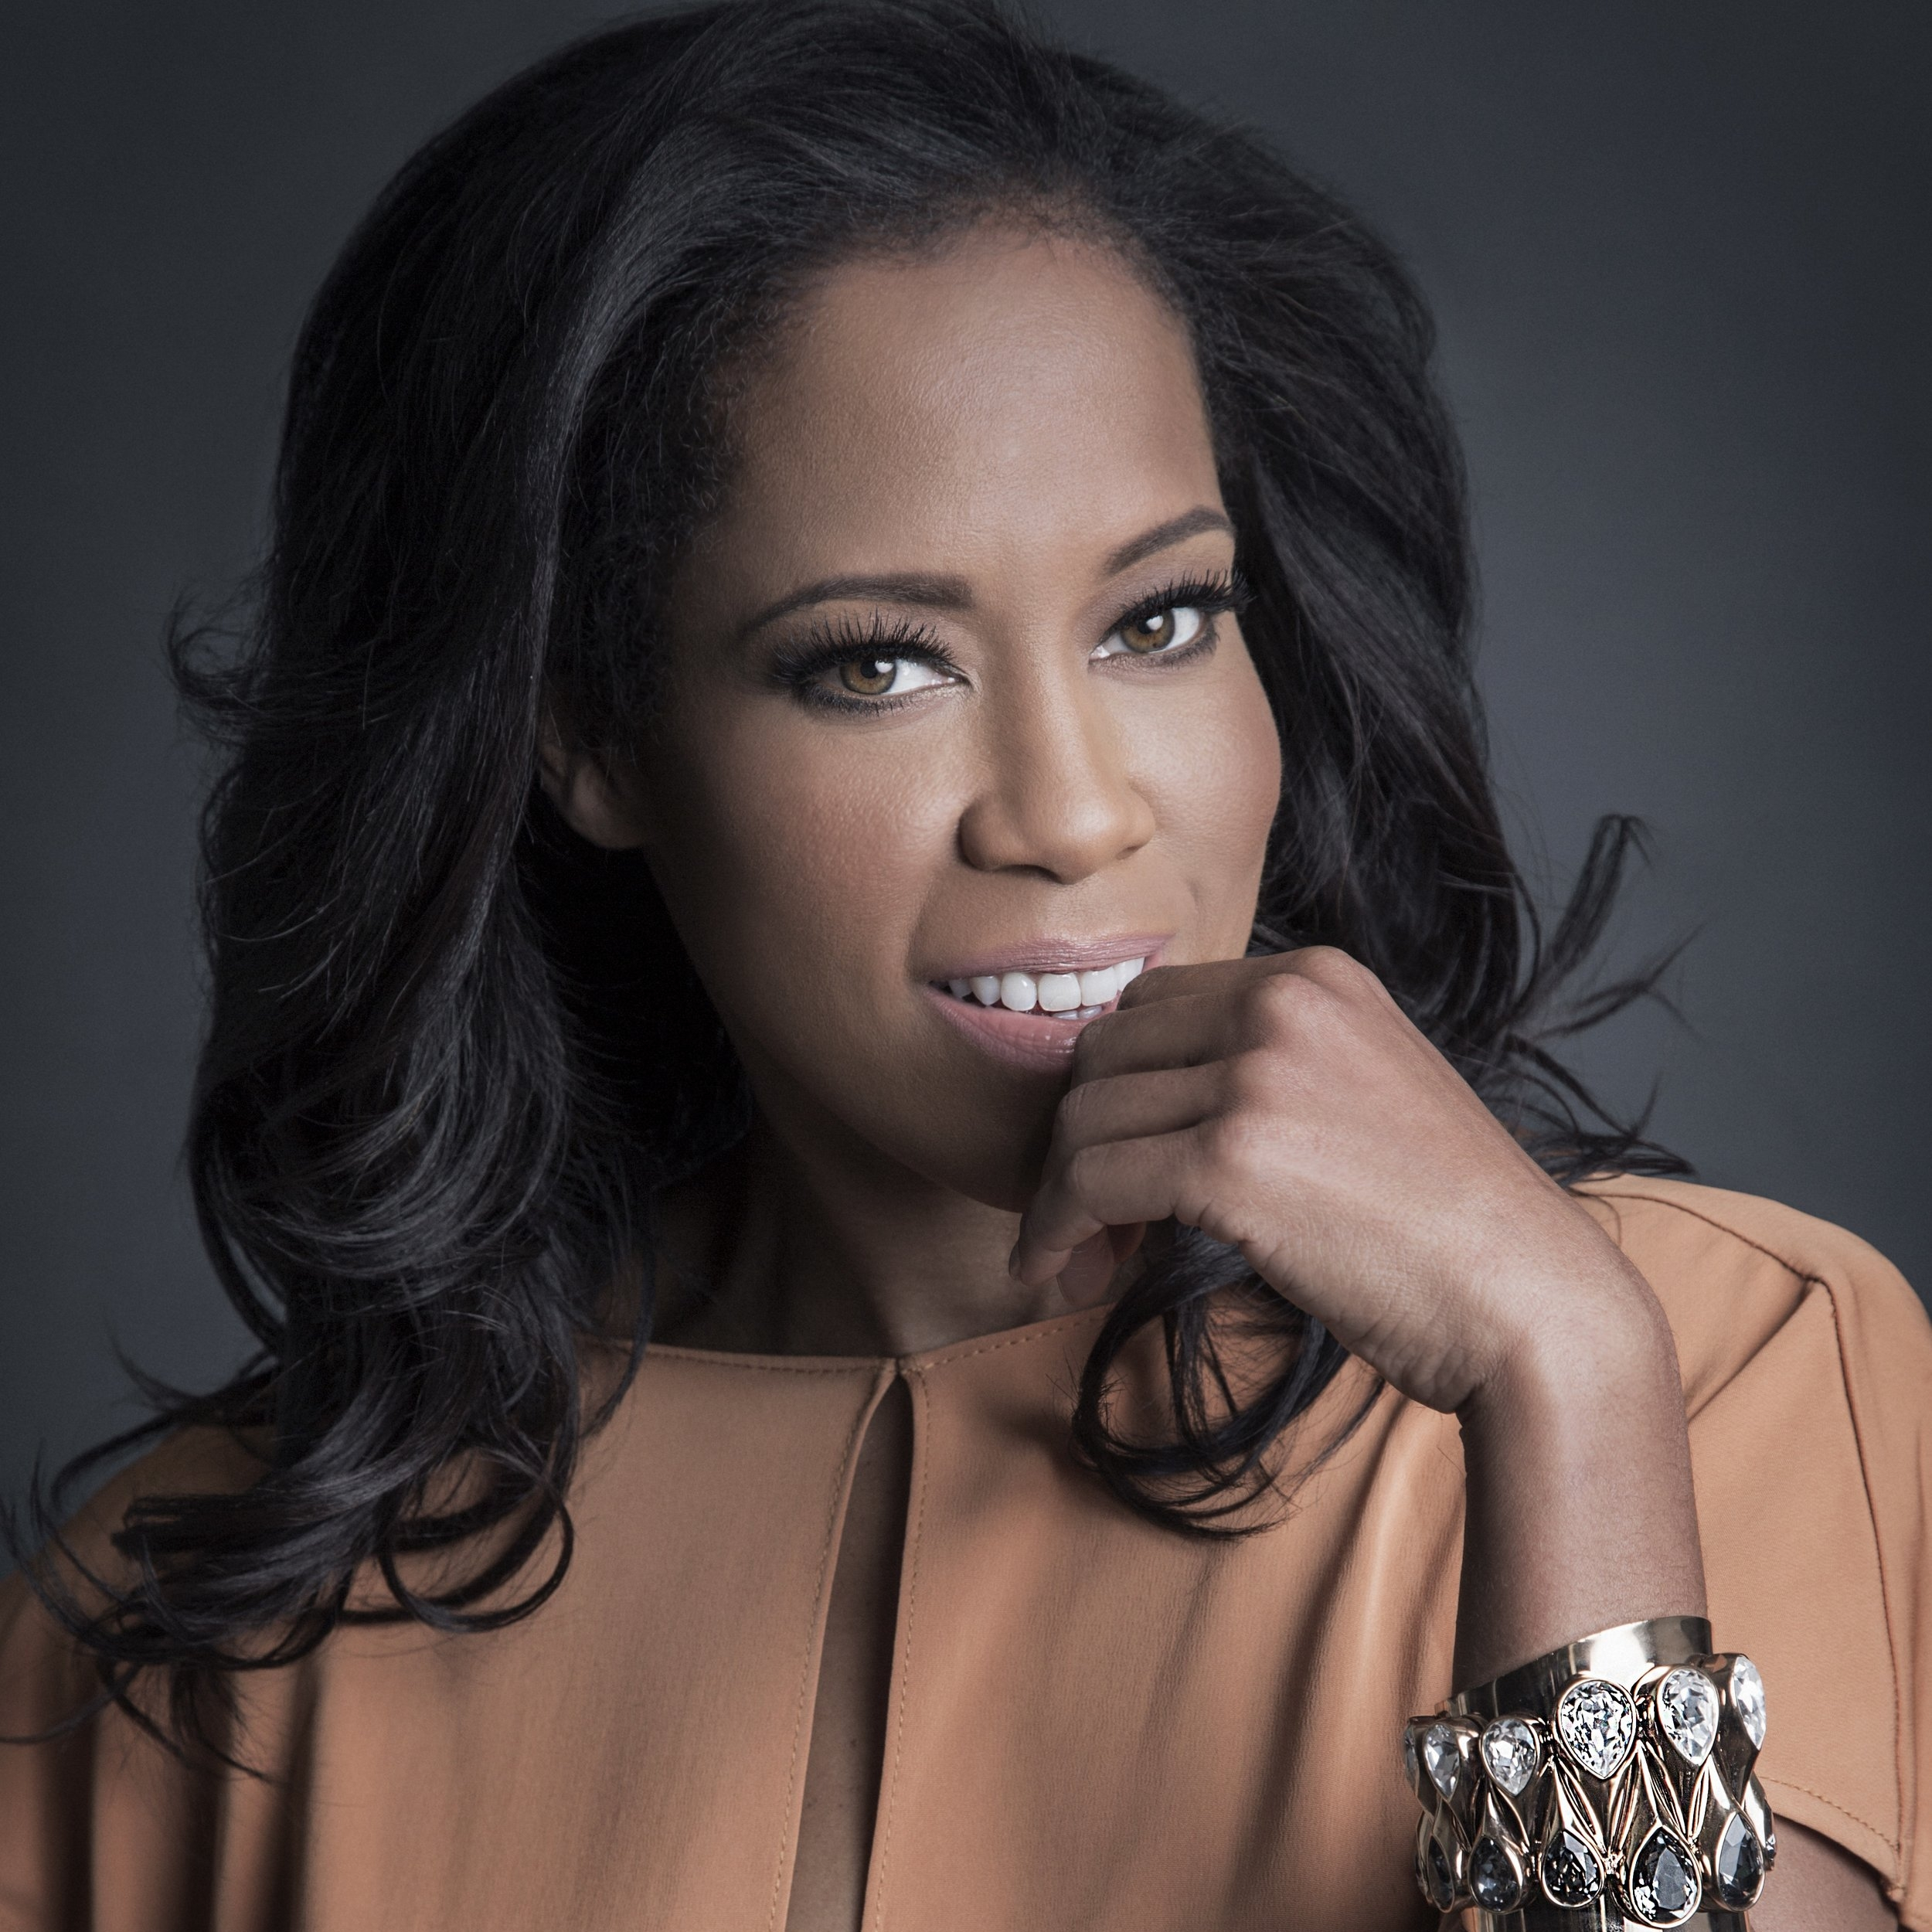 ReginaKing_PH_DianaRagland+(003).jpg?format=2500w